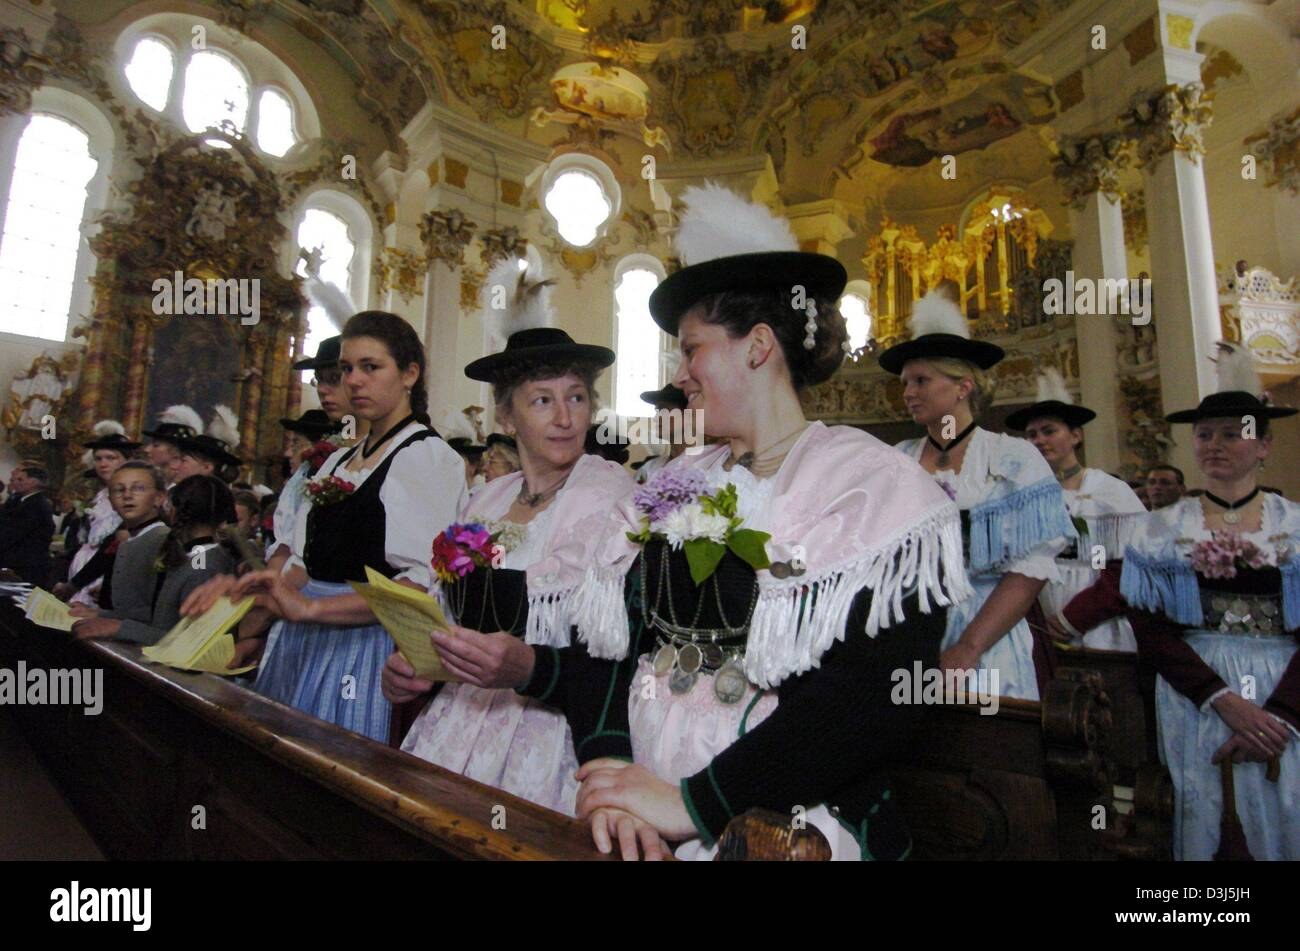 (dpa) - A group of women dressed in traditional costumes attend a church service on Whit Monday in Steingaden, Germany, - Stock Image